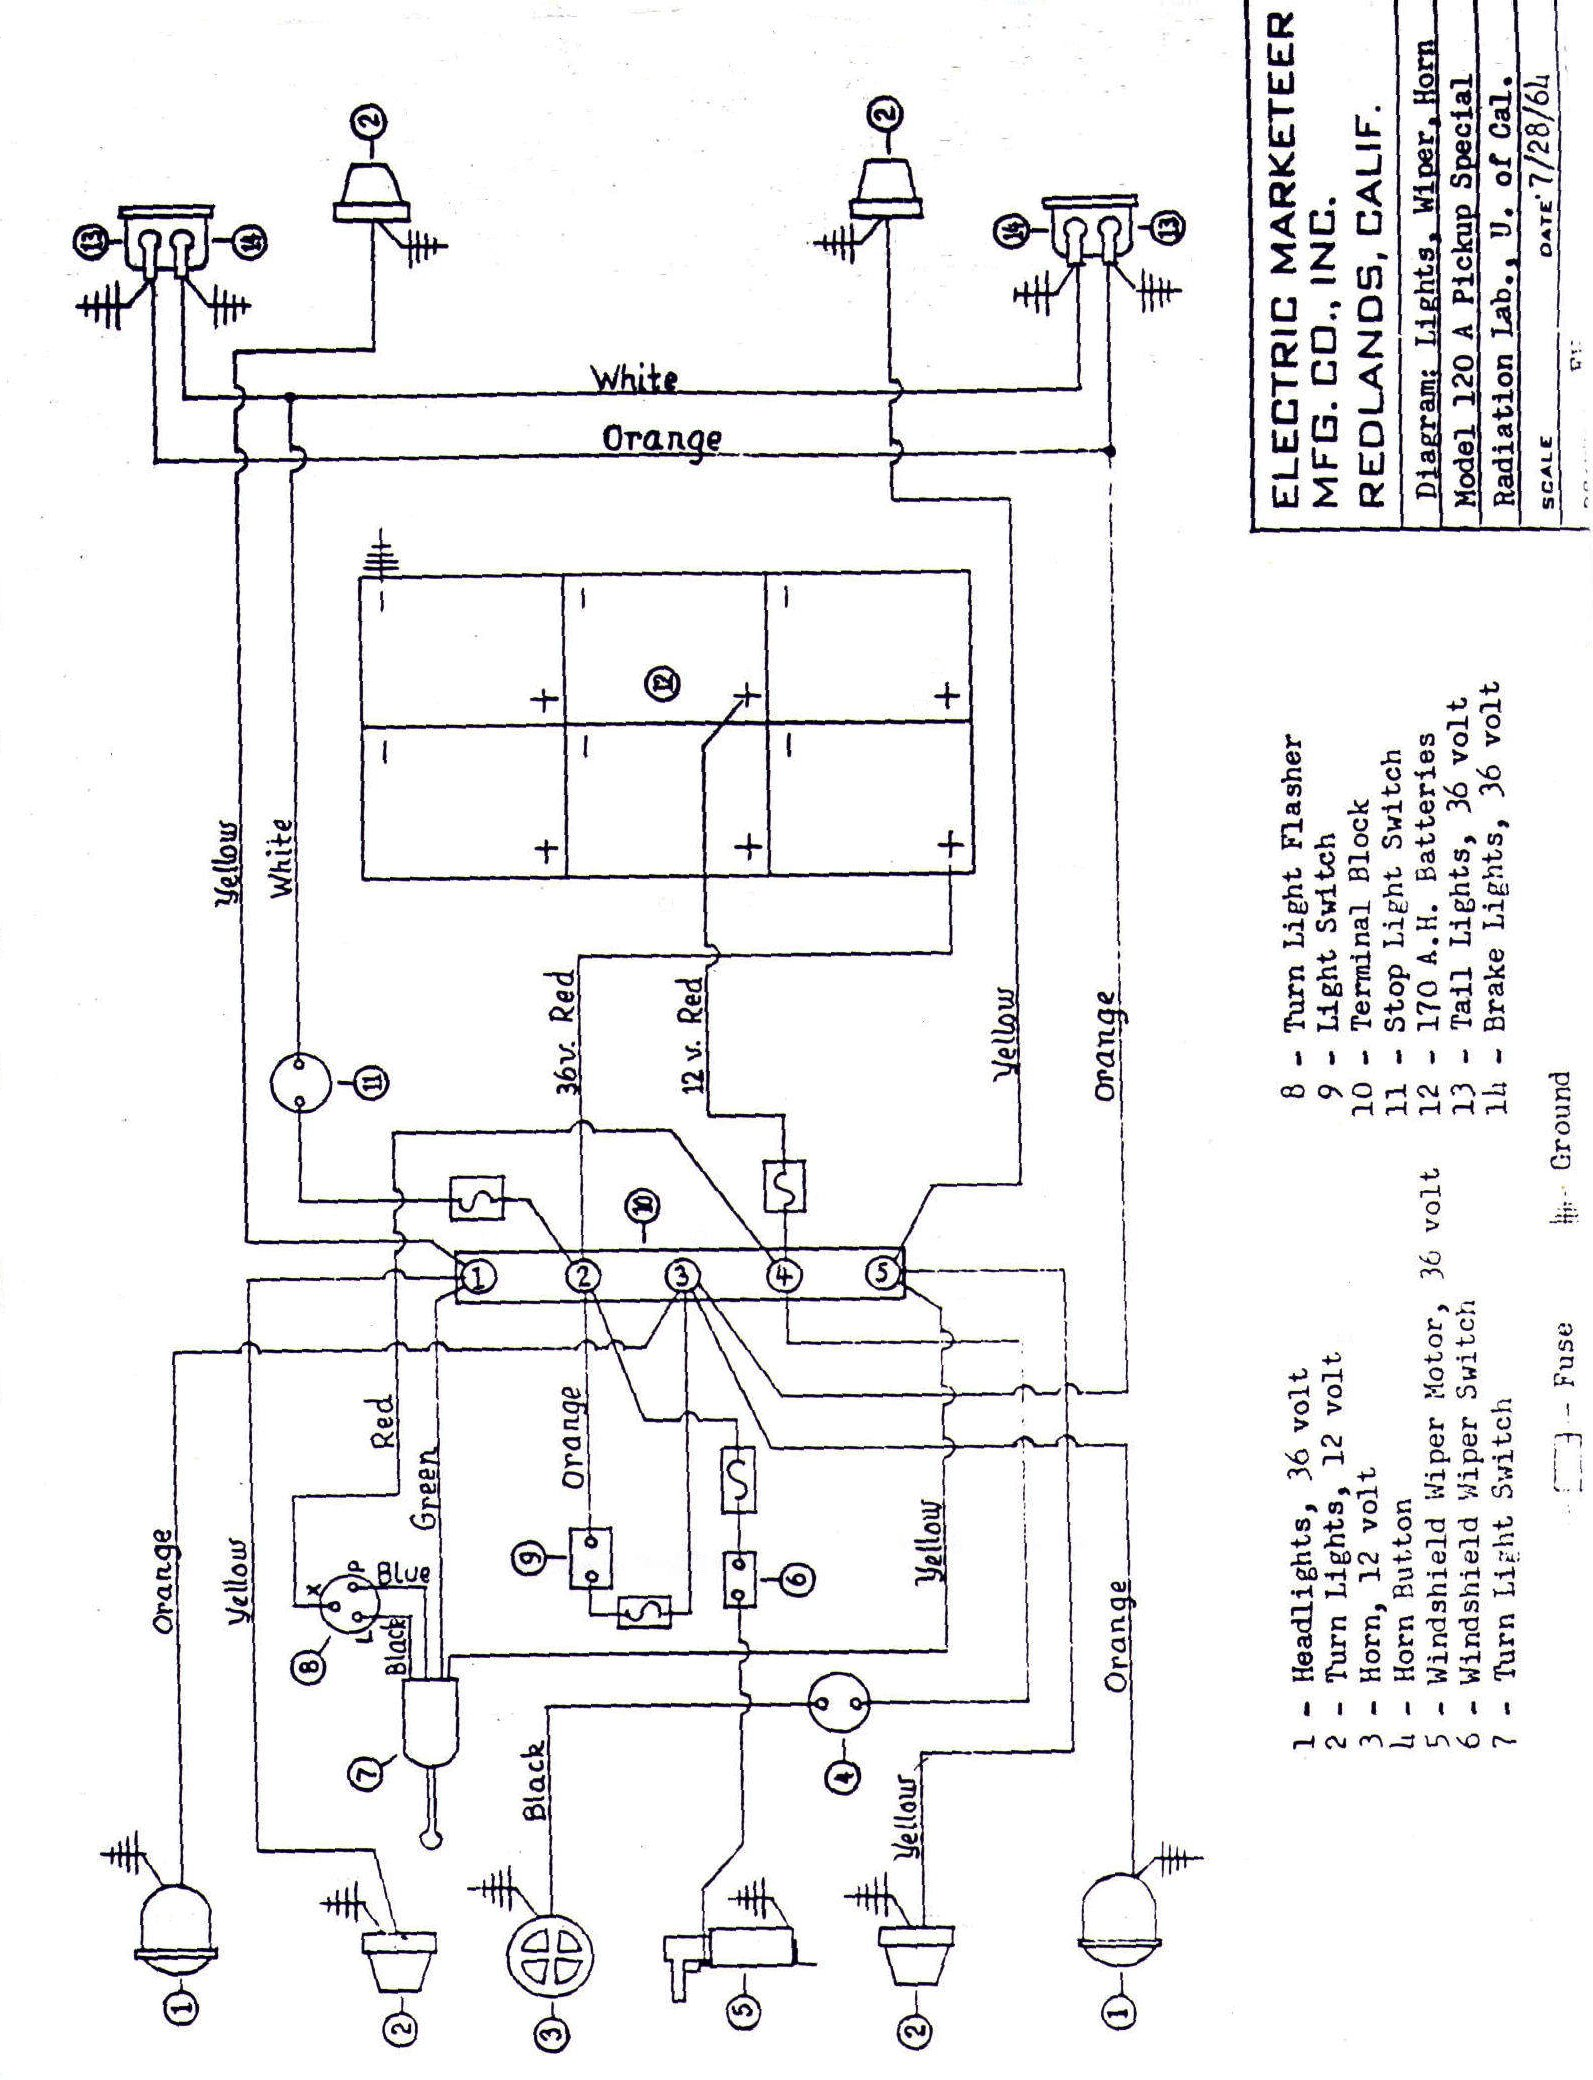 Melex 412 Golf Cart Wiring Diagram